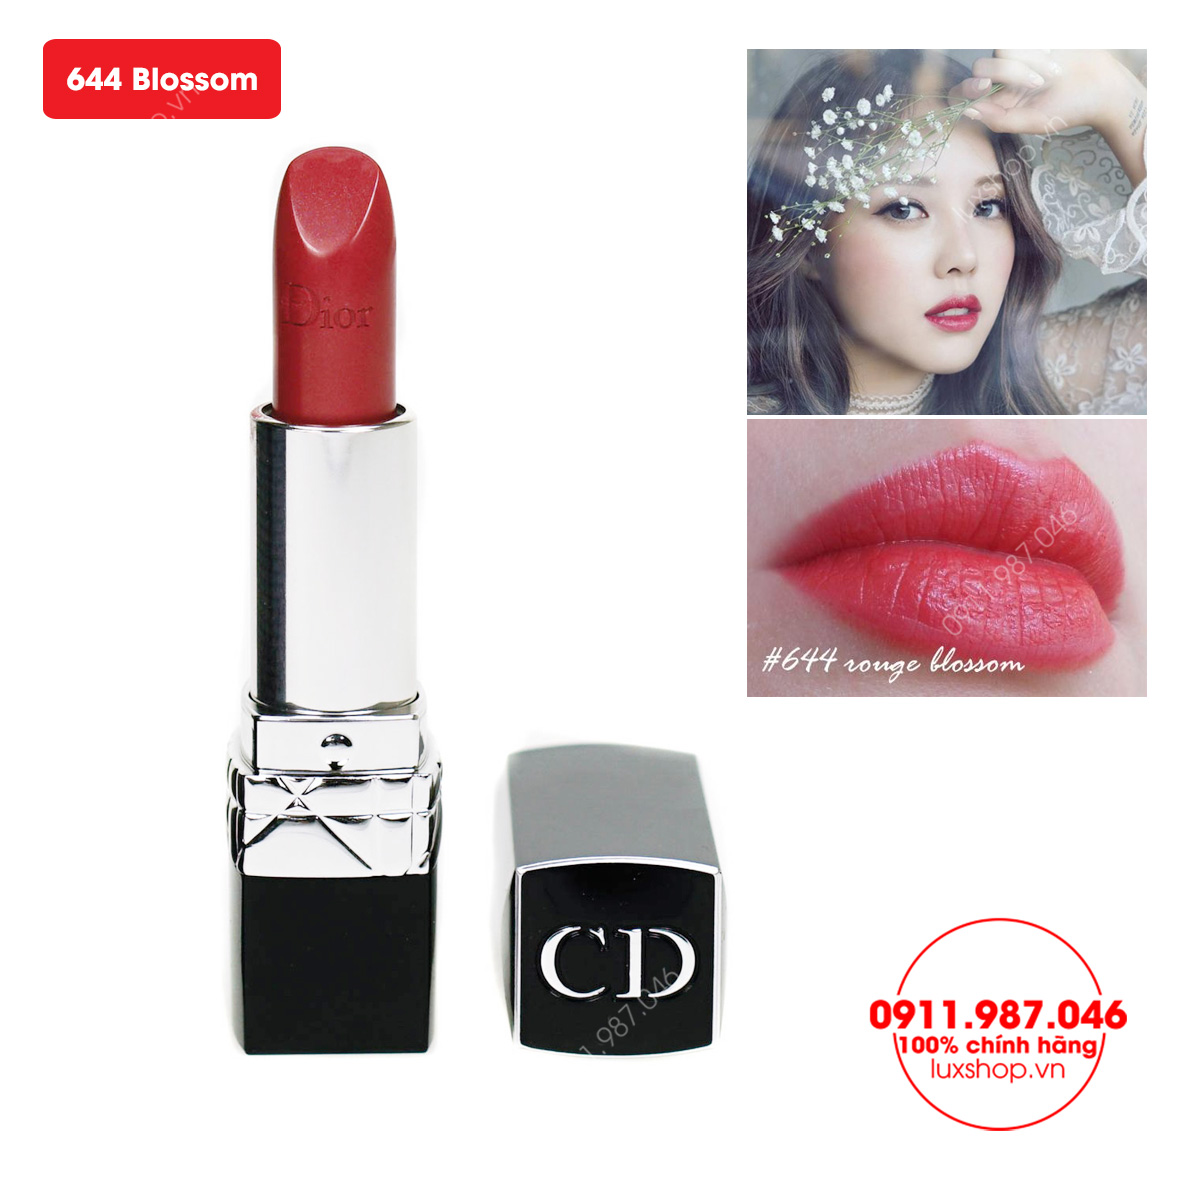 son-moi-dior-rouge-644-blossom-mau-do-hong-chinh-hang-phap-pn92425